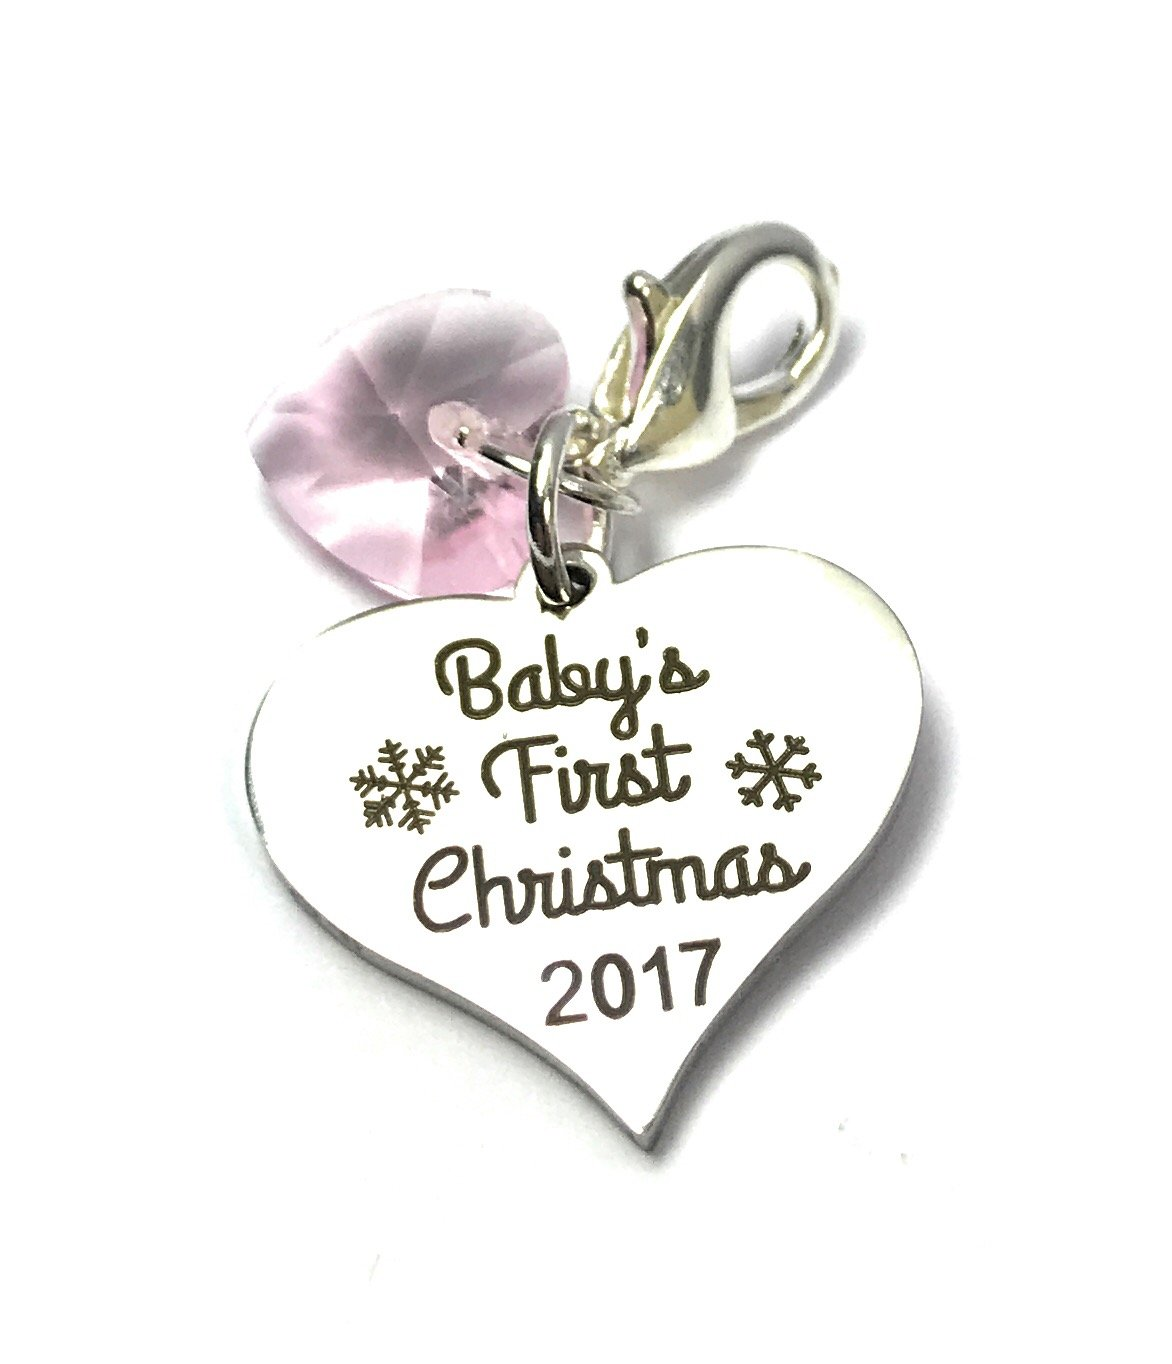 Baby's First Christmas 2017 sign charm with Pink Crystal comes in 3 Different Gift Options Handmade by Libby's Market Place (Gift Box) Libby's Market Place